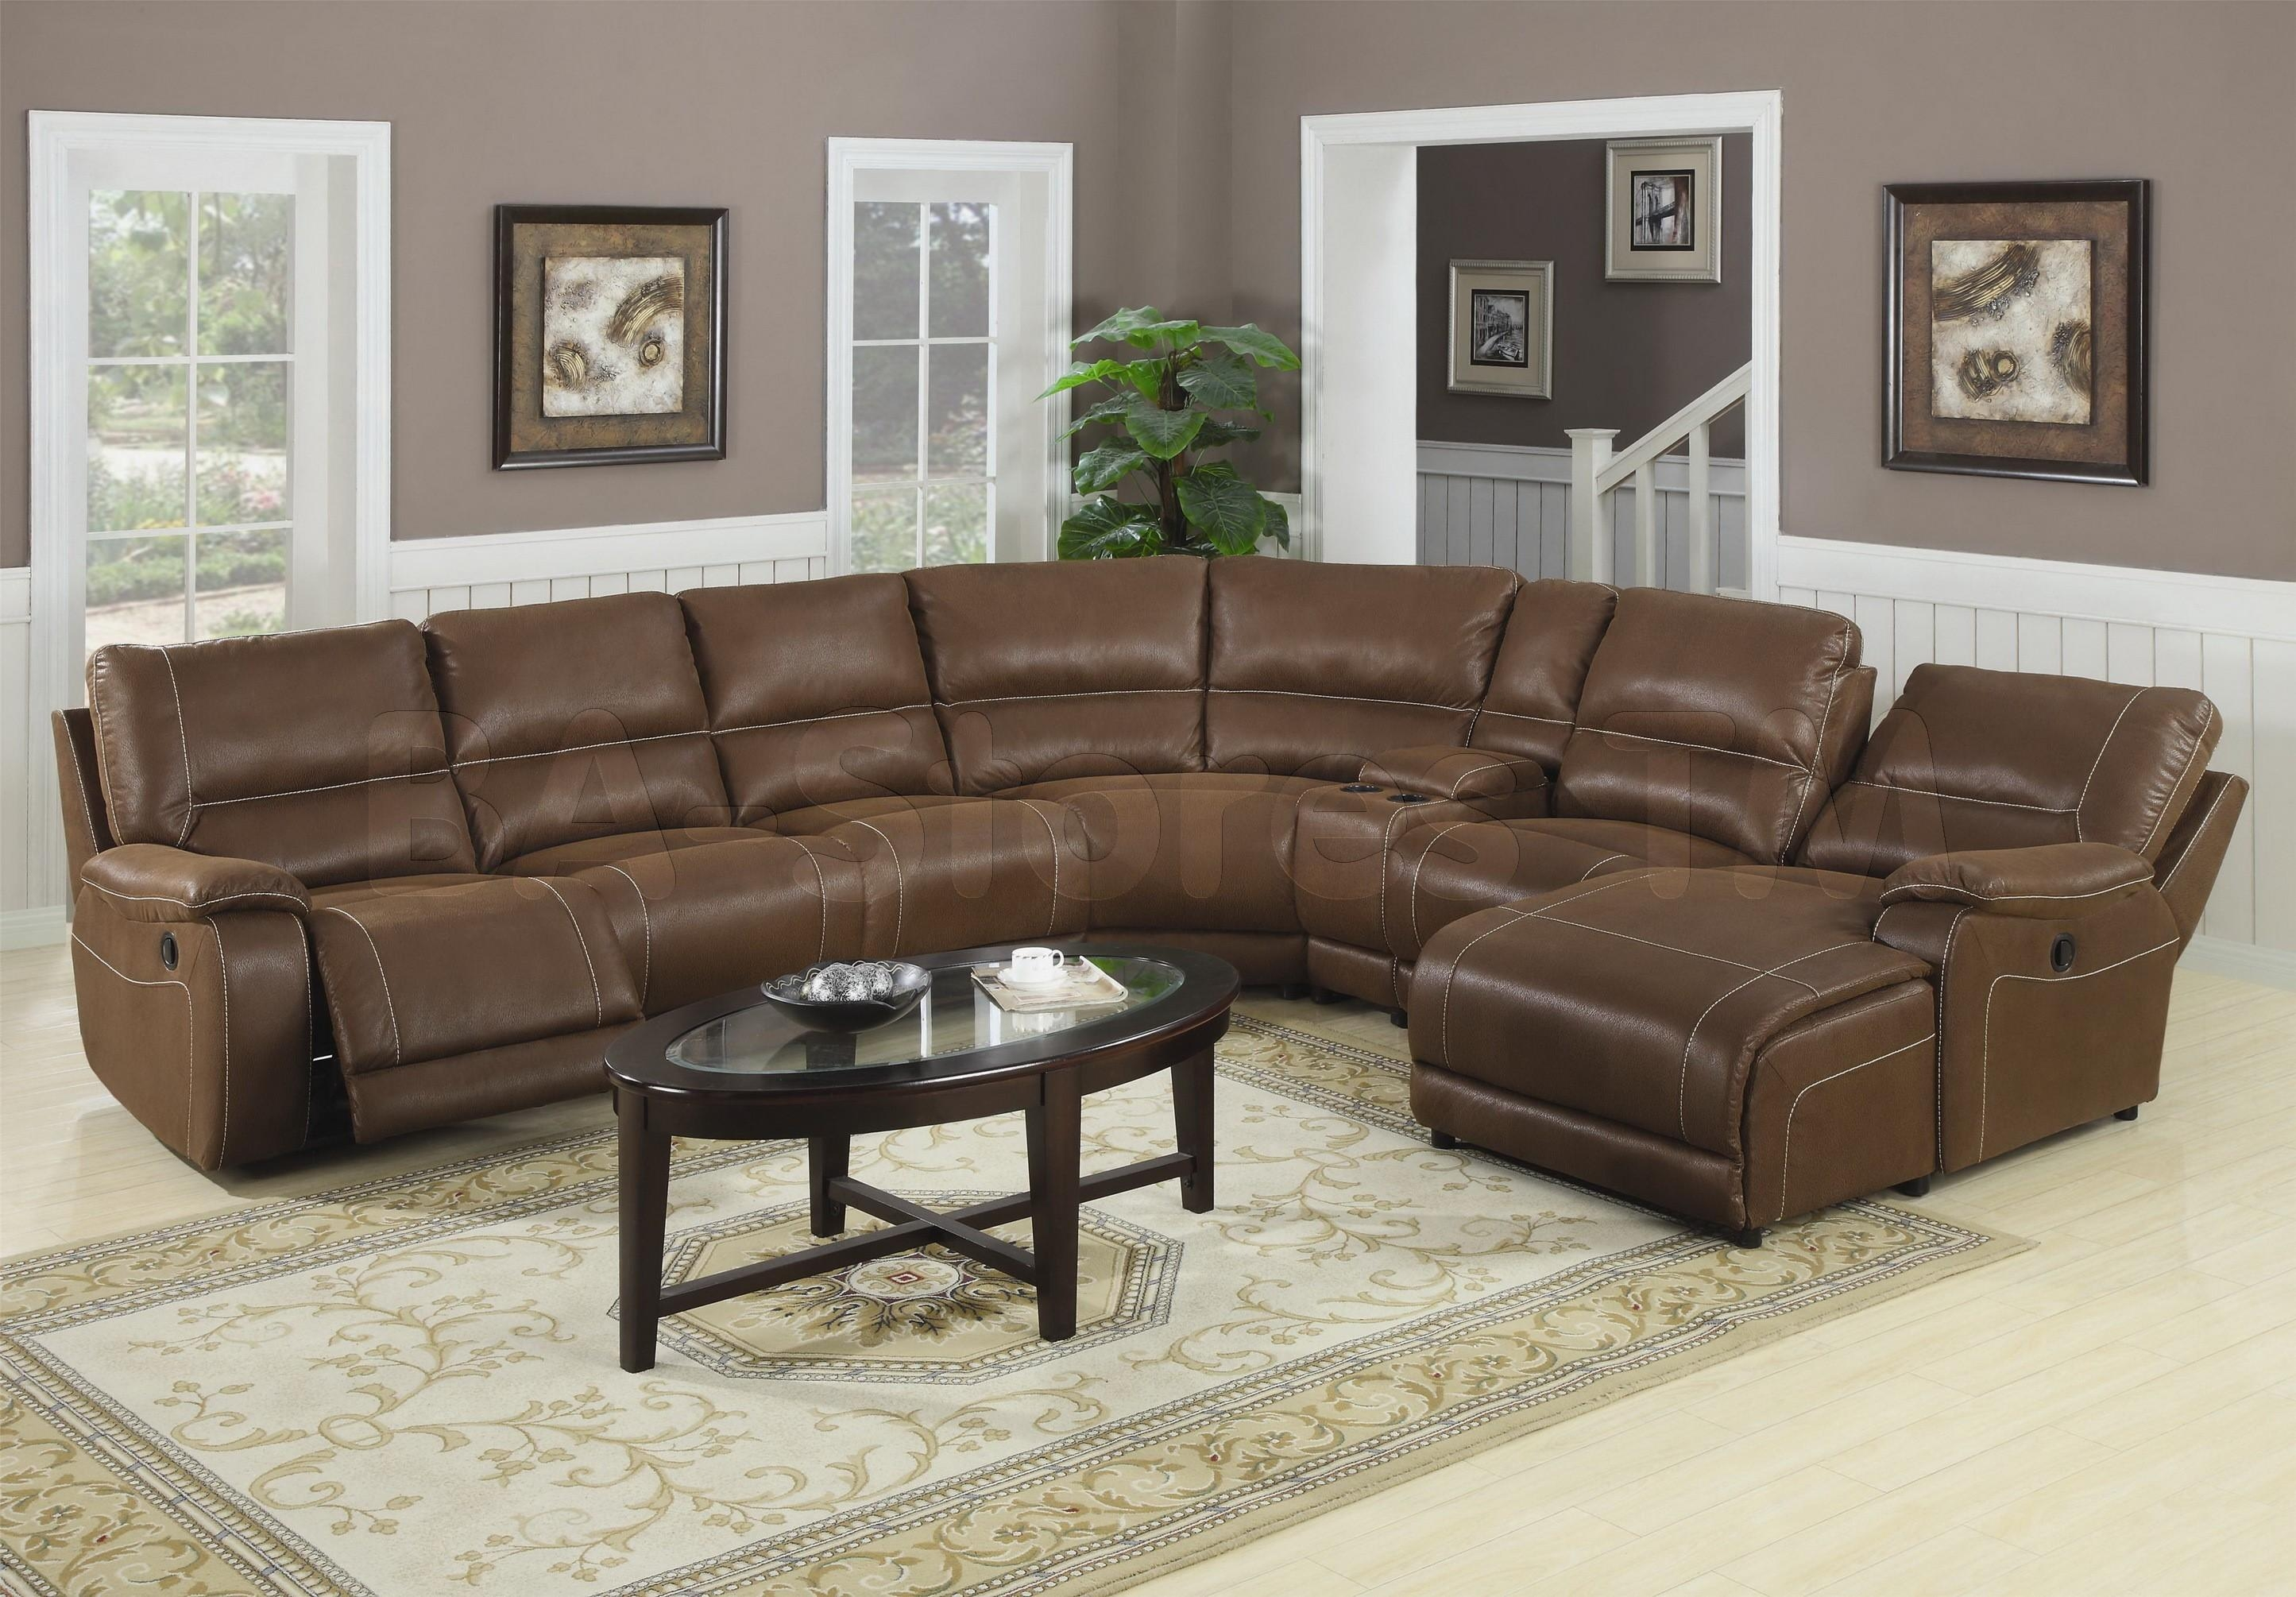 Decorating: Fill Your Home With Comfy Costco Sectionals Sofa For With Berkline Sectional Sofas (Image 11 of 20)